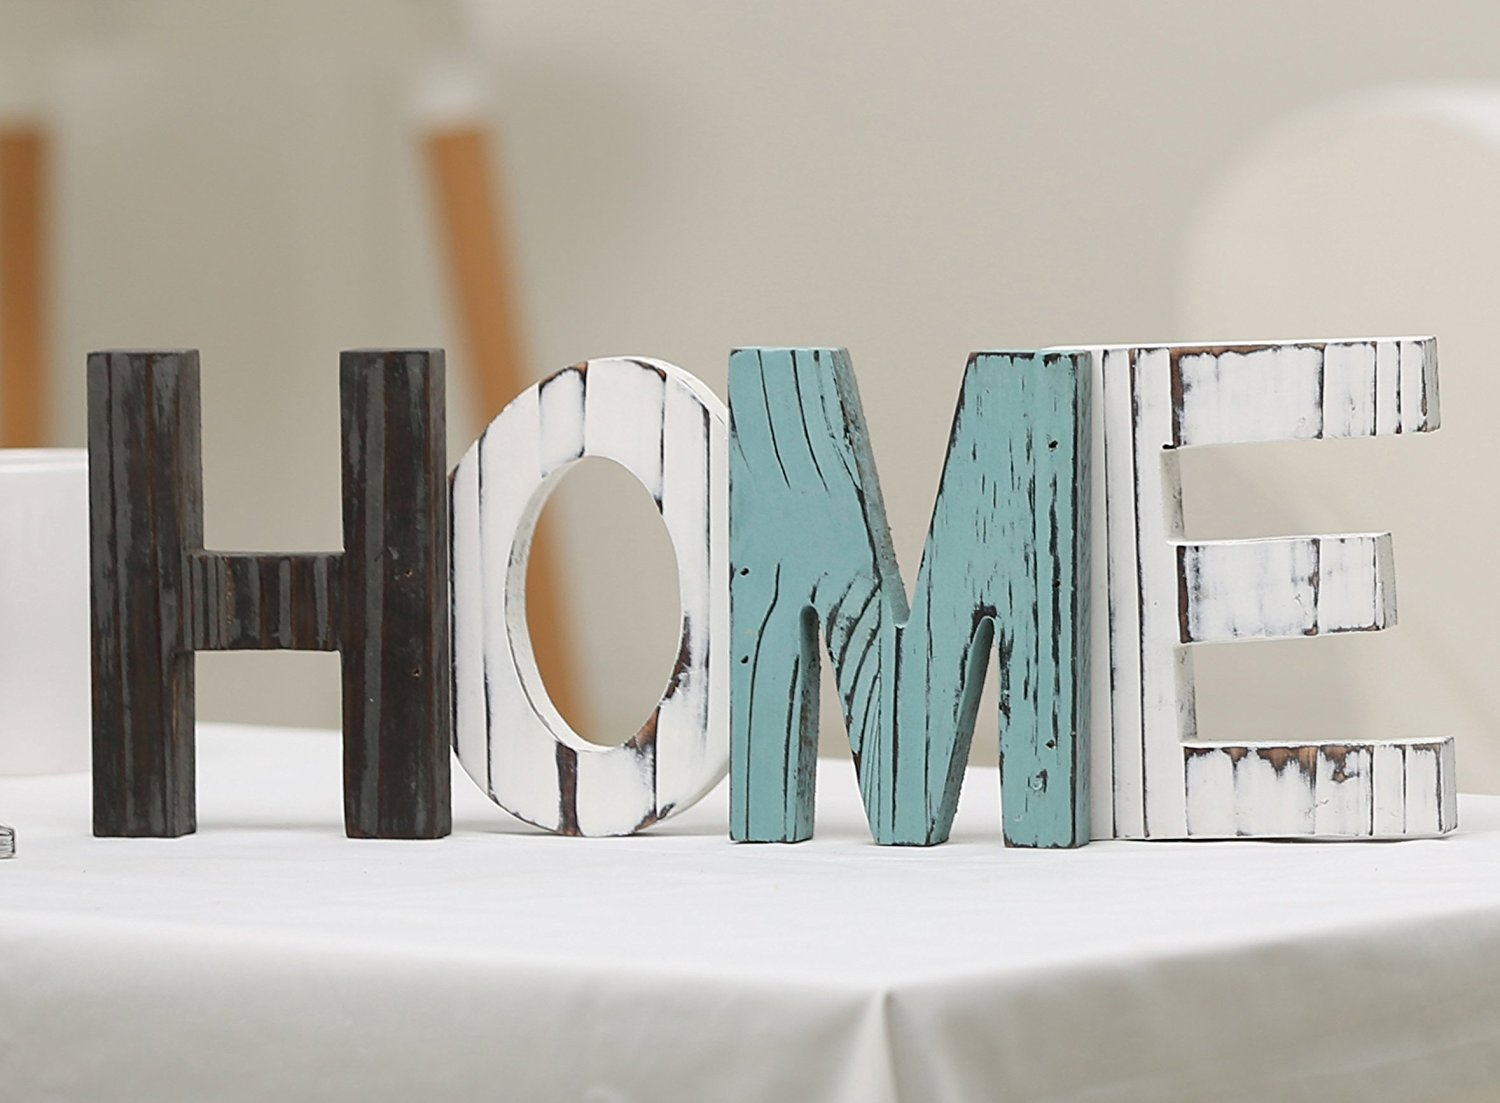 Kitchen Gadget 6 Letters Mygift Rustic Wood Home Decorative Sign Standing Cutout